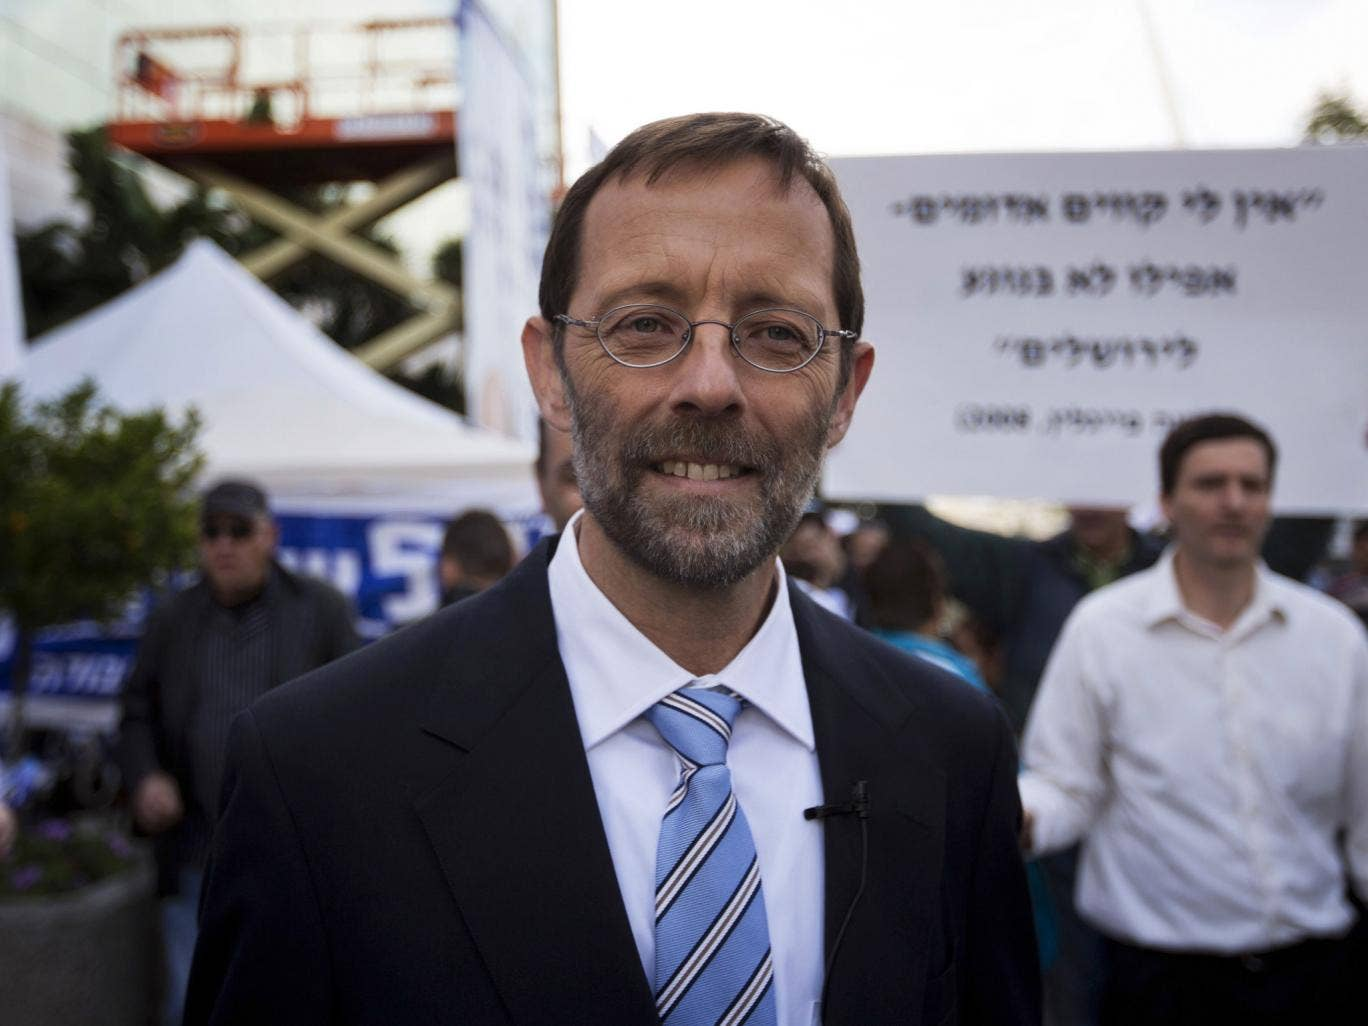 Moshe Feiglin leaves a polling station after casting his vote on November 25, 2012 in Jerusalem